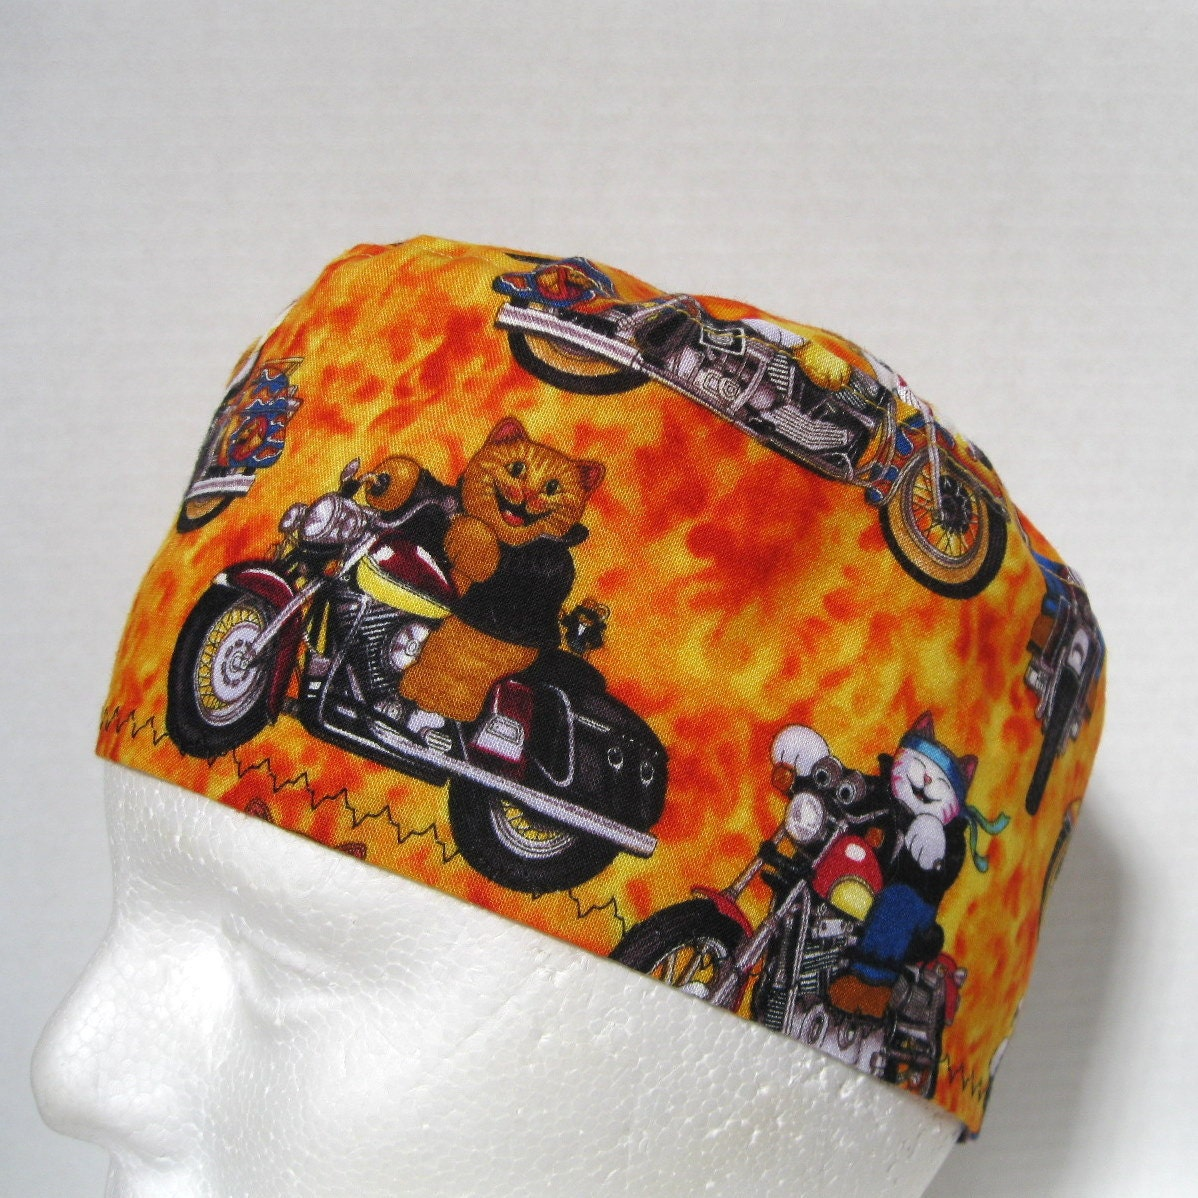 scrub hat surgical cap or skull cap cool cats on motorcycles